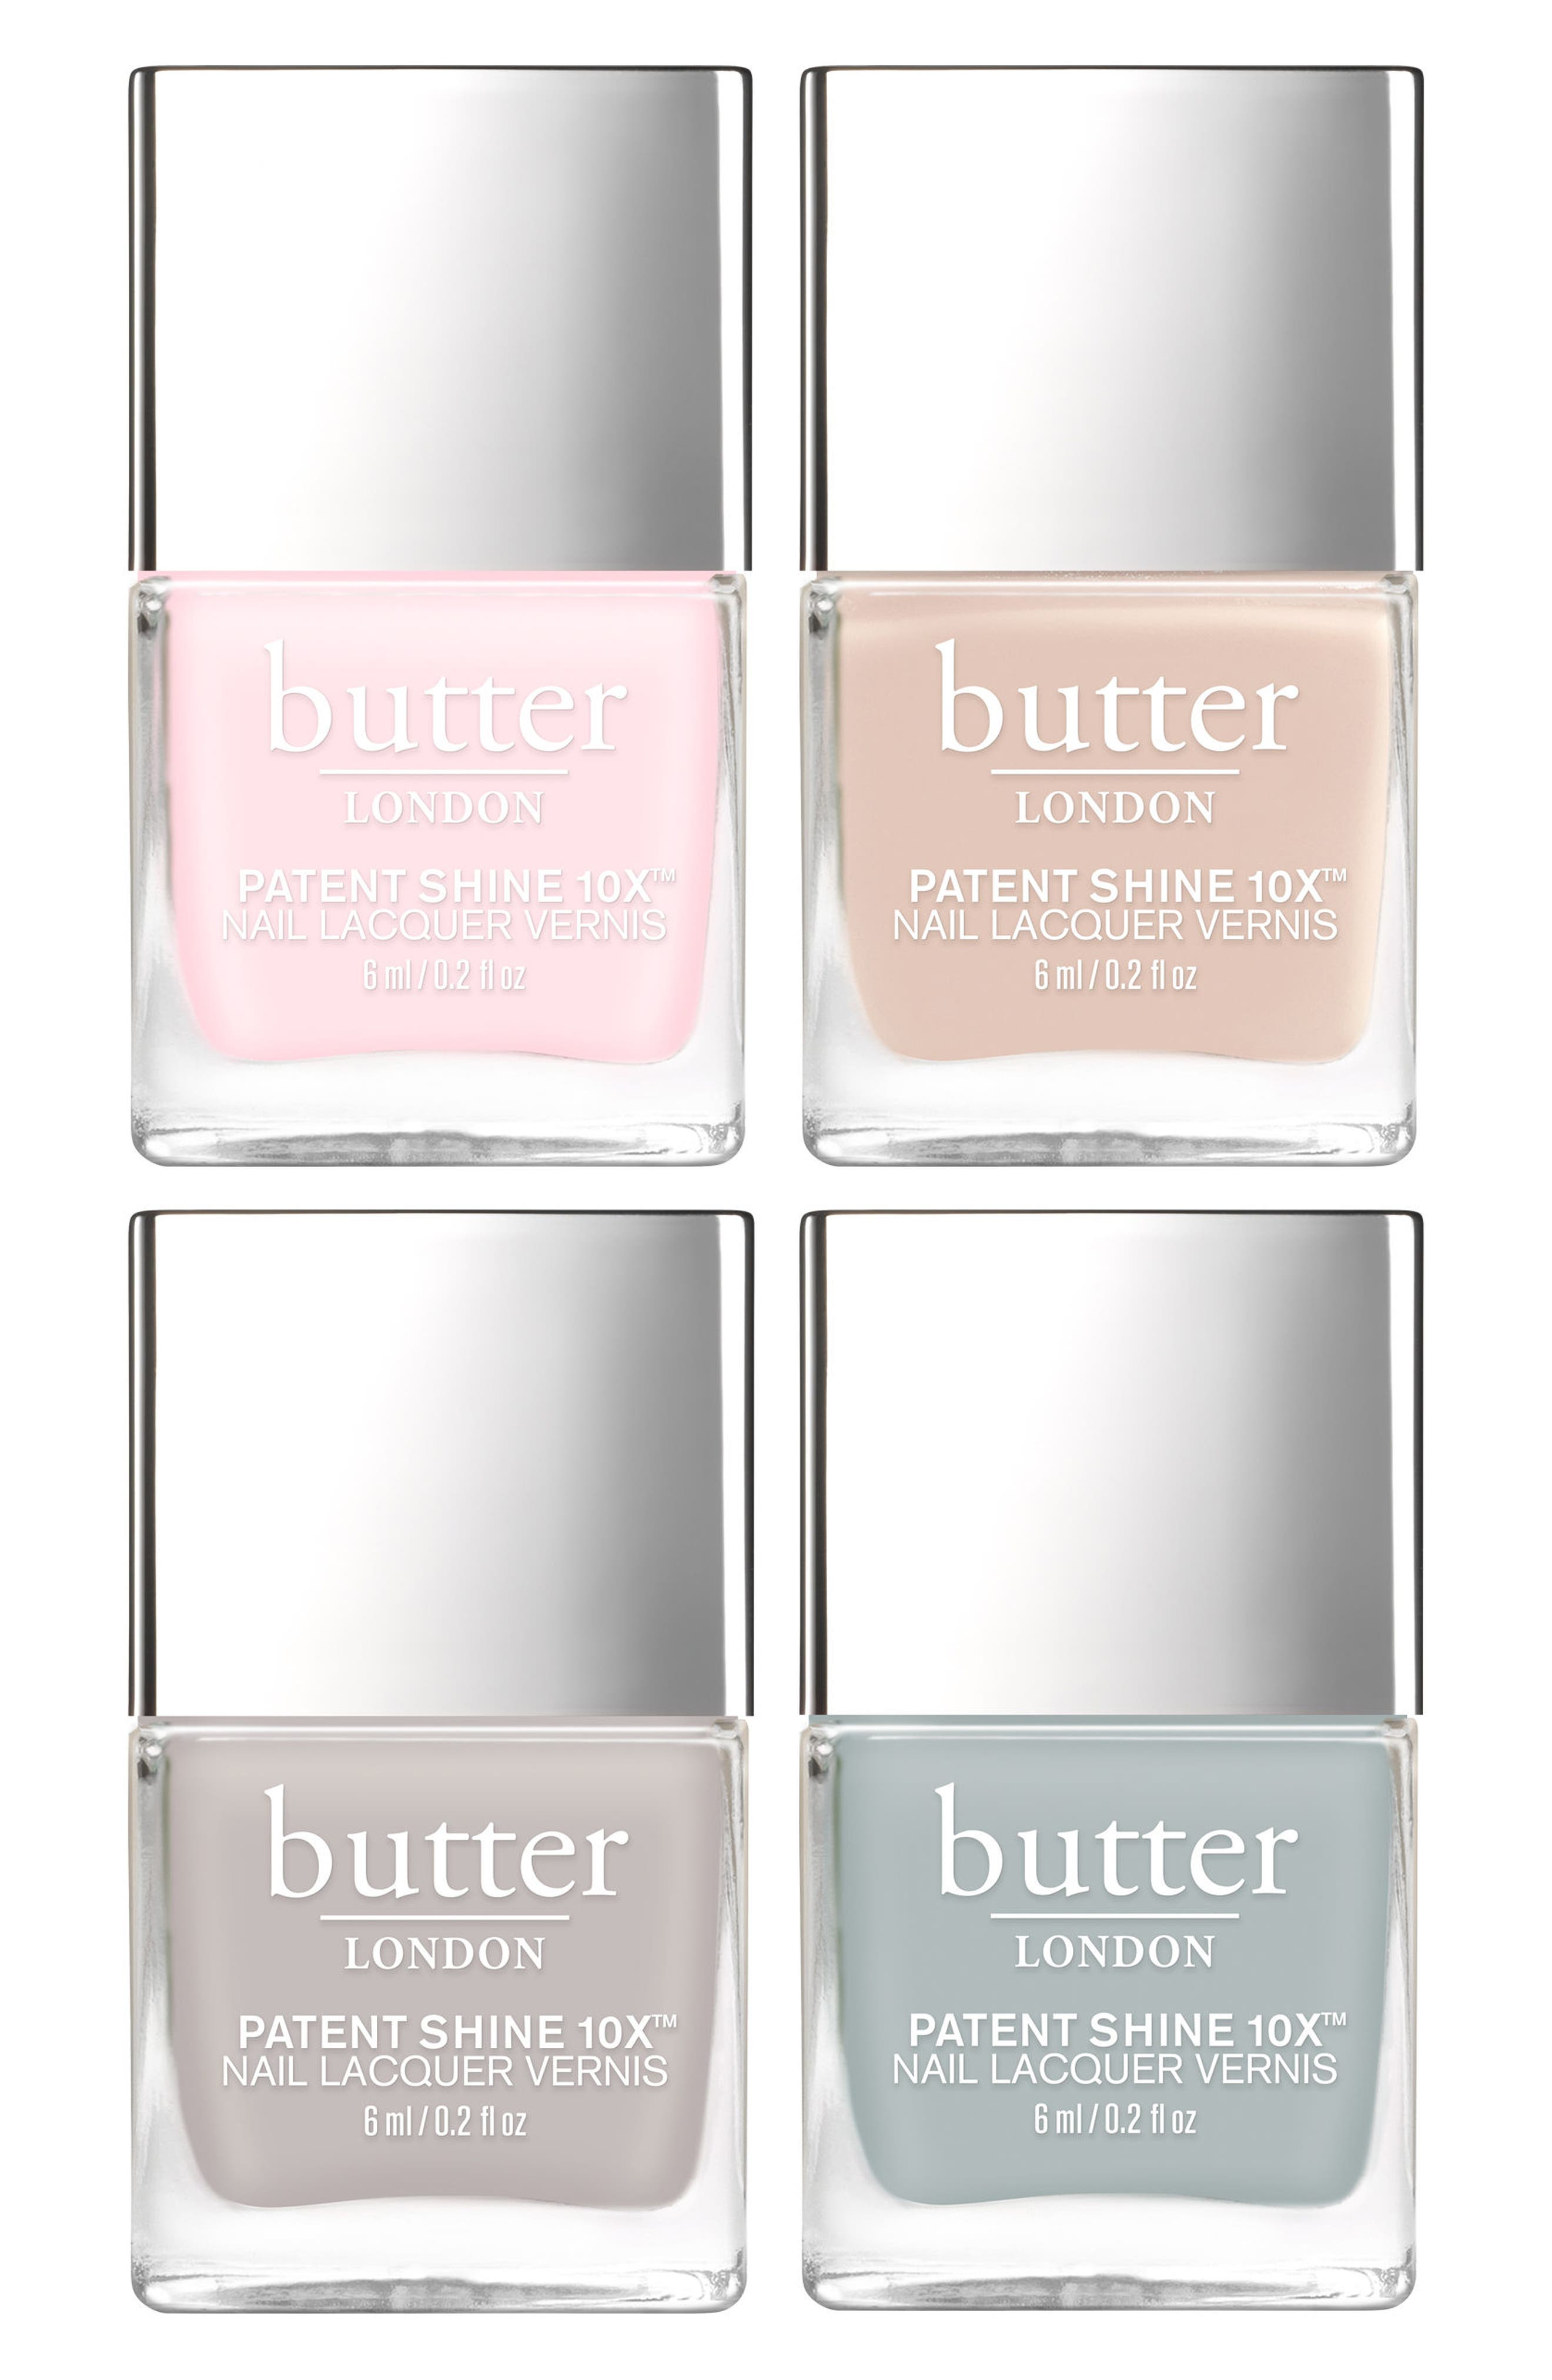 butter LONDON Palace Pastels Nail Lacquer Set (Nordstrom Exclusive) ($48 Value)